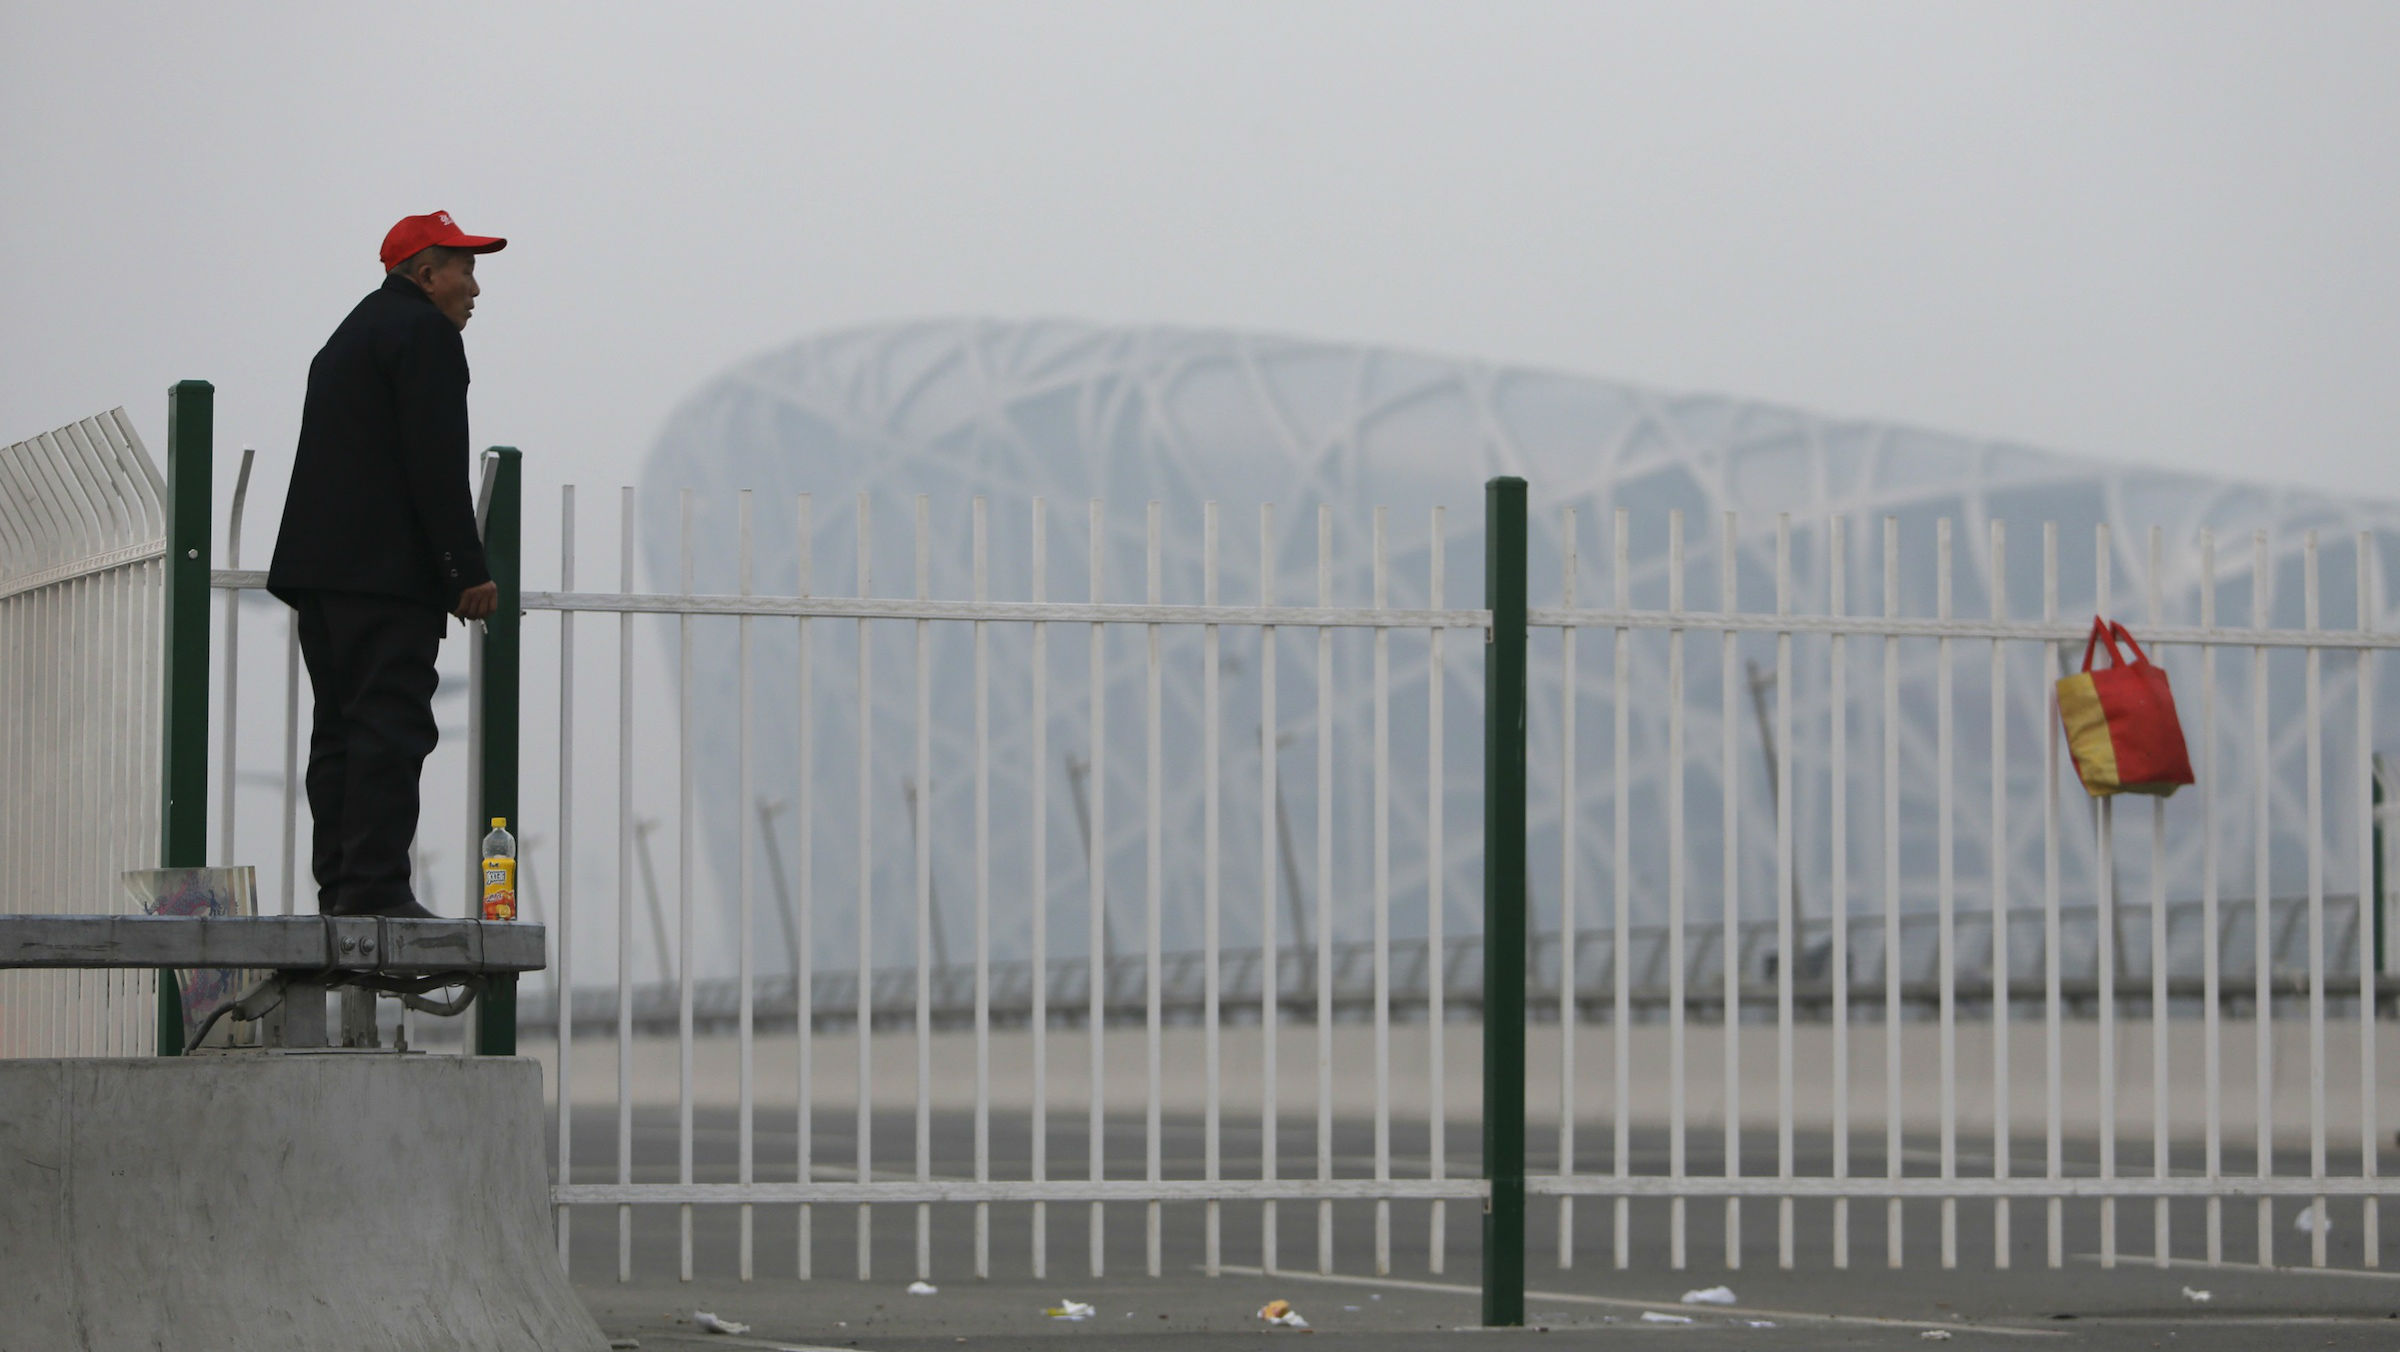 The National Olympic Stadium in Beijing